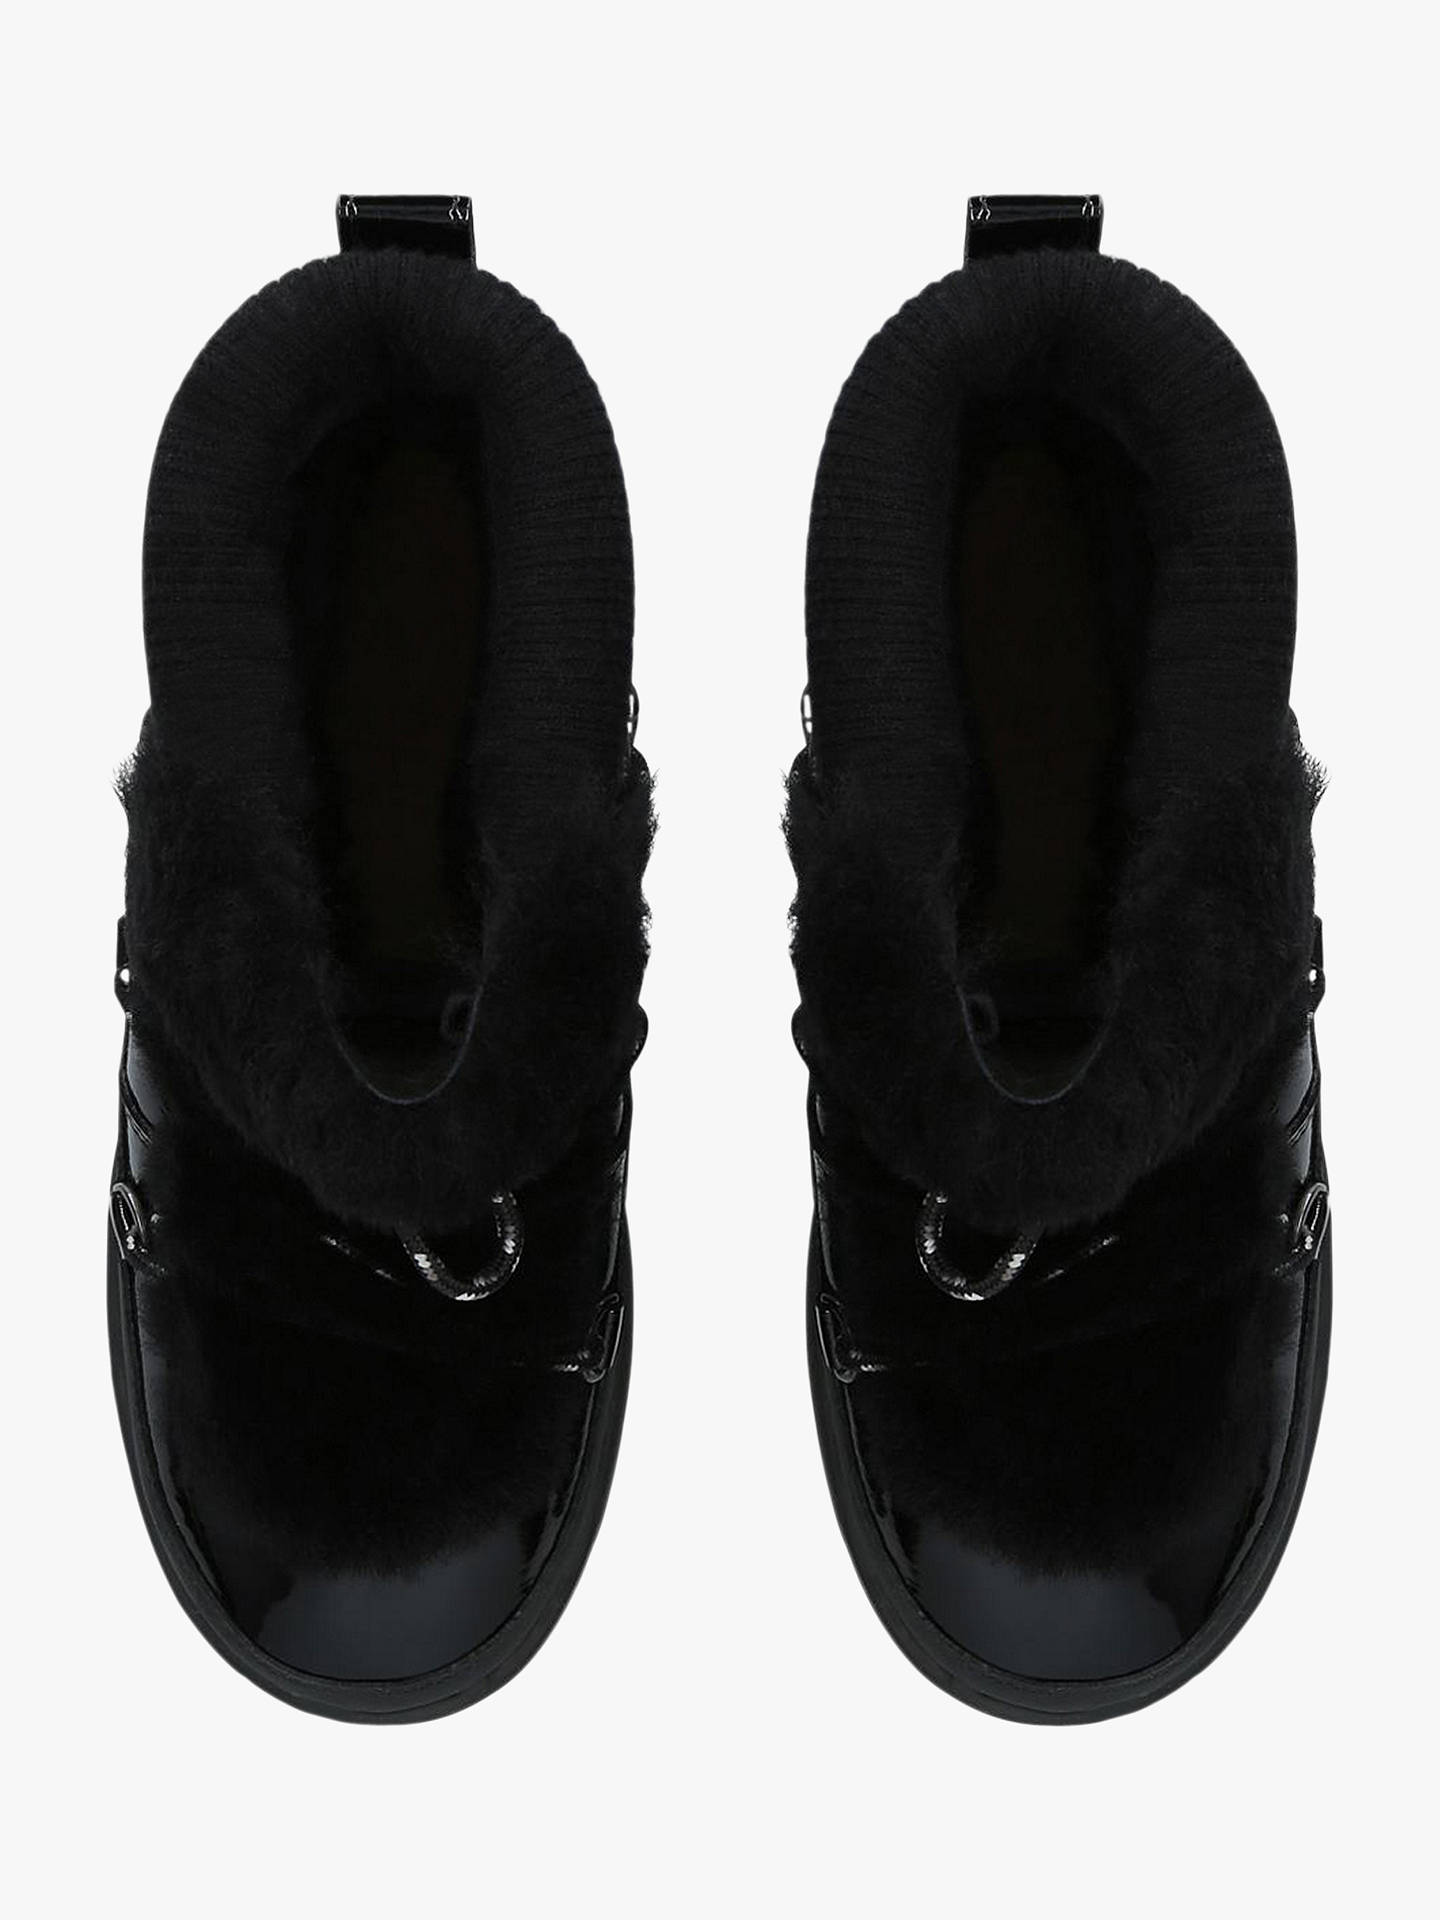 a80585f71a8 UGG Highland Waterproof Ankle Boots, Black Leather at John Lewis ...